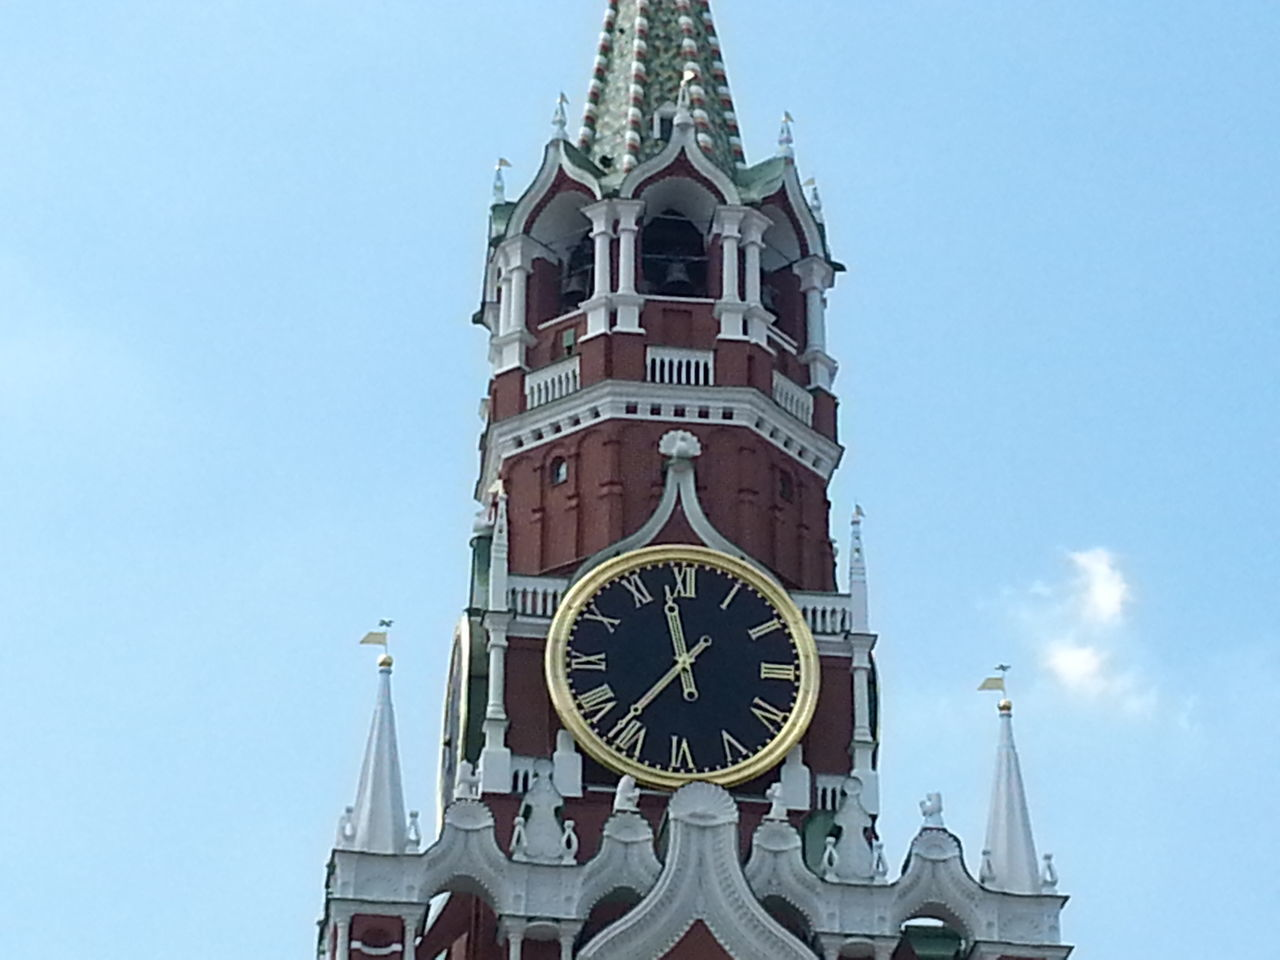 Low Angle View Of Clock Tower Against Clear Sky